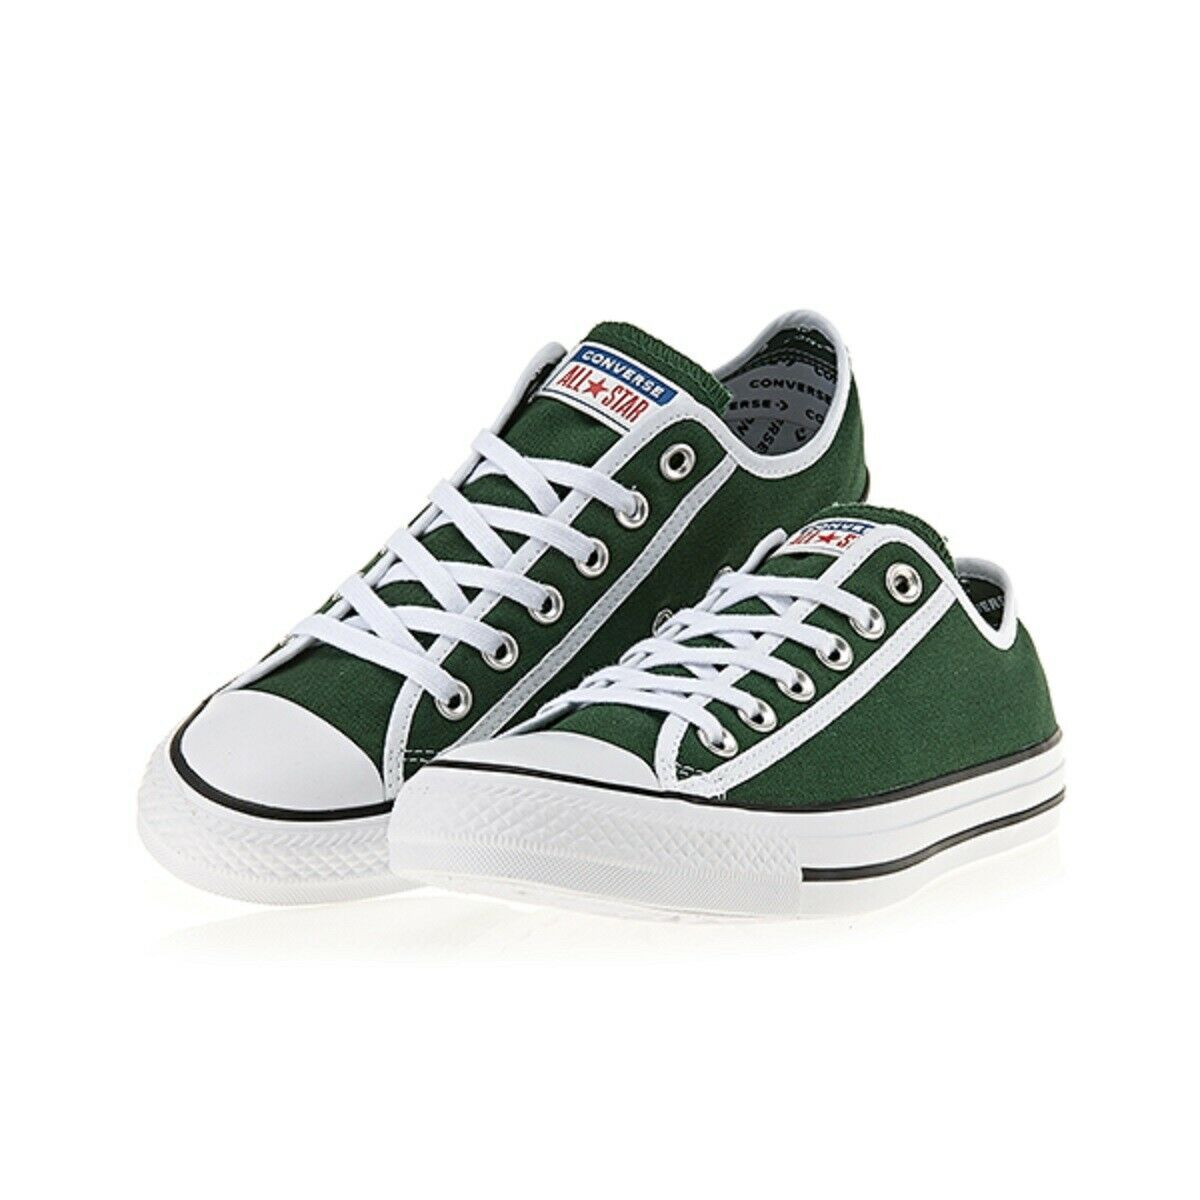 CONVERSE 163981C Fir bianca Chuck Taylor All star OX Junior Unisex verde bianca